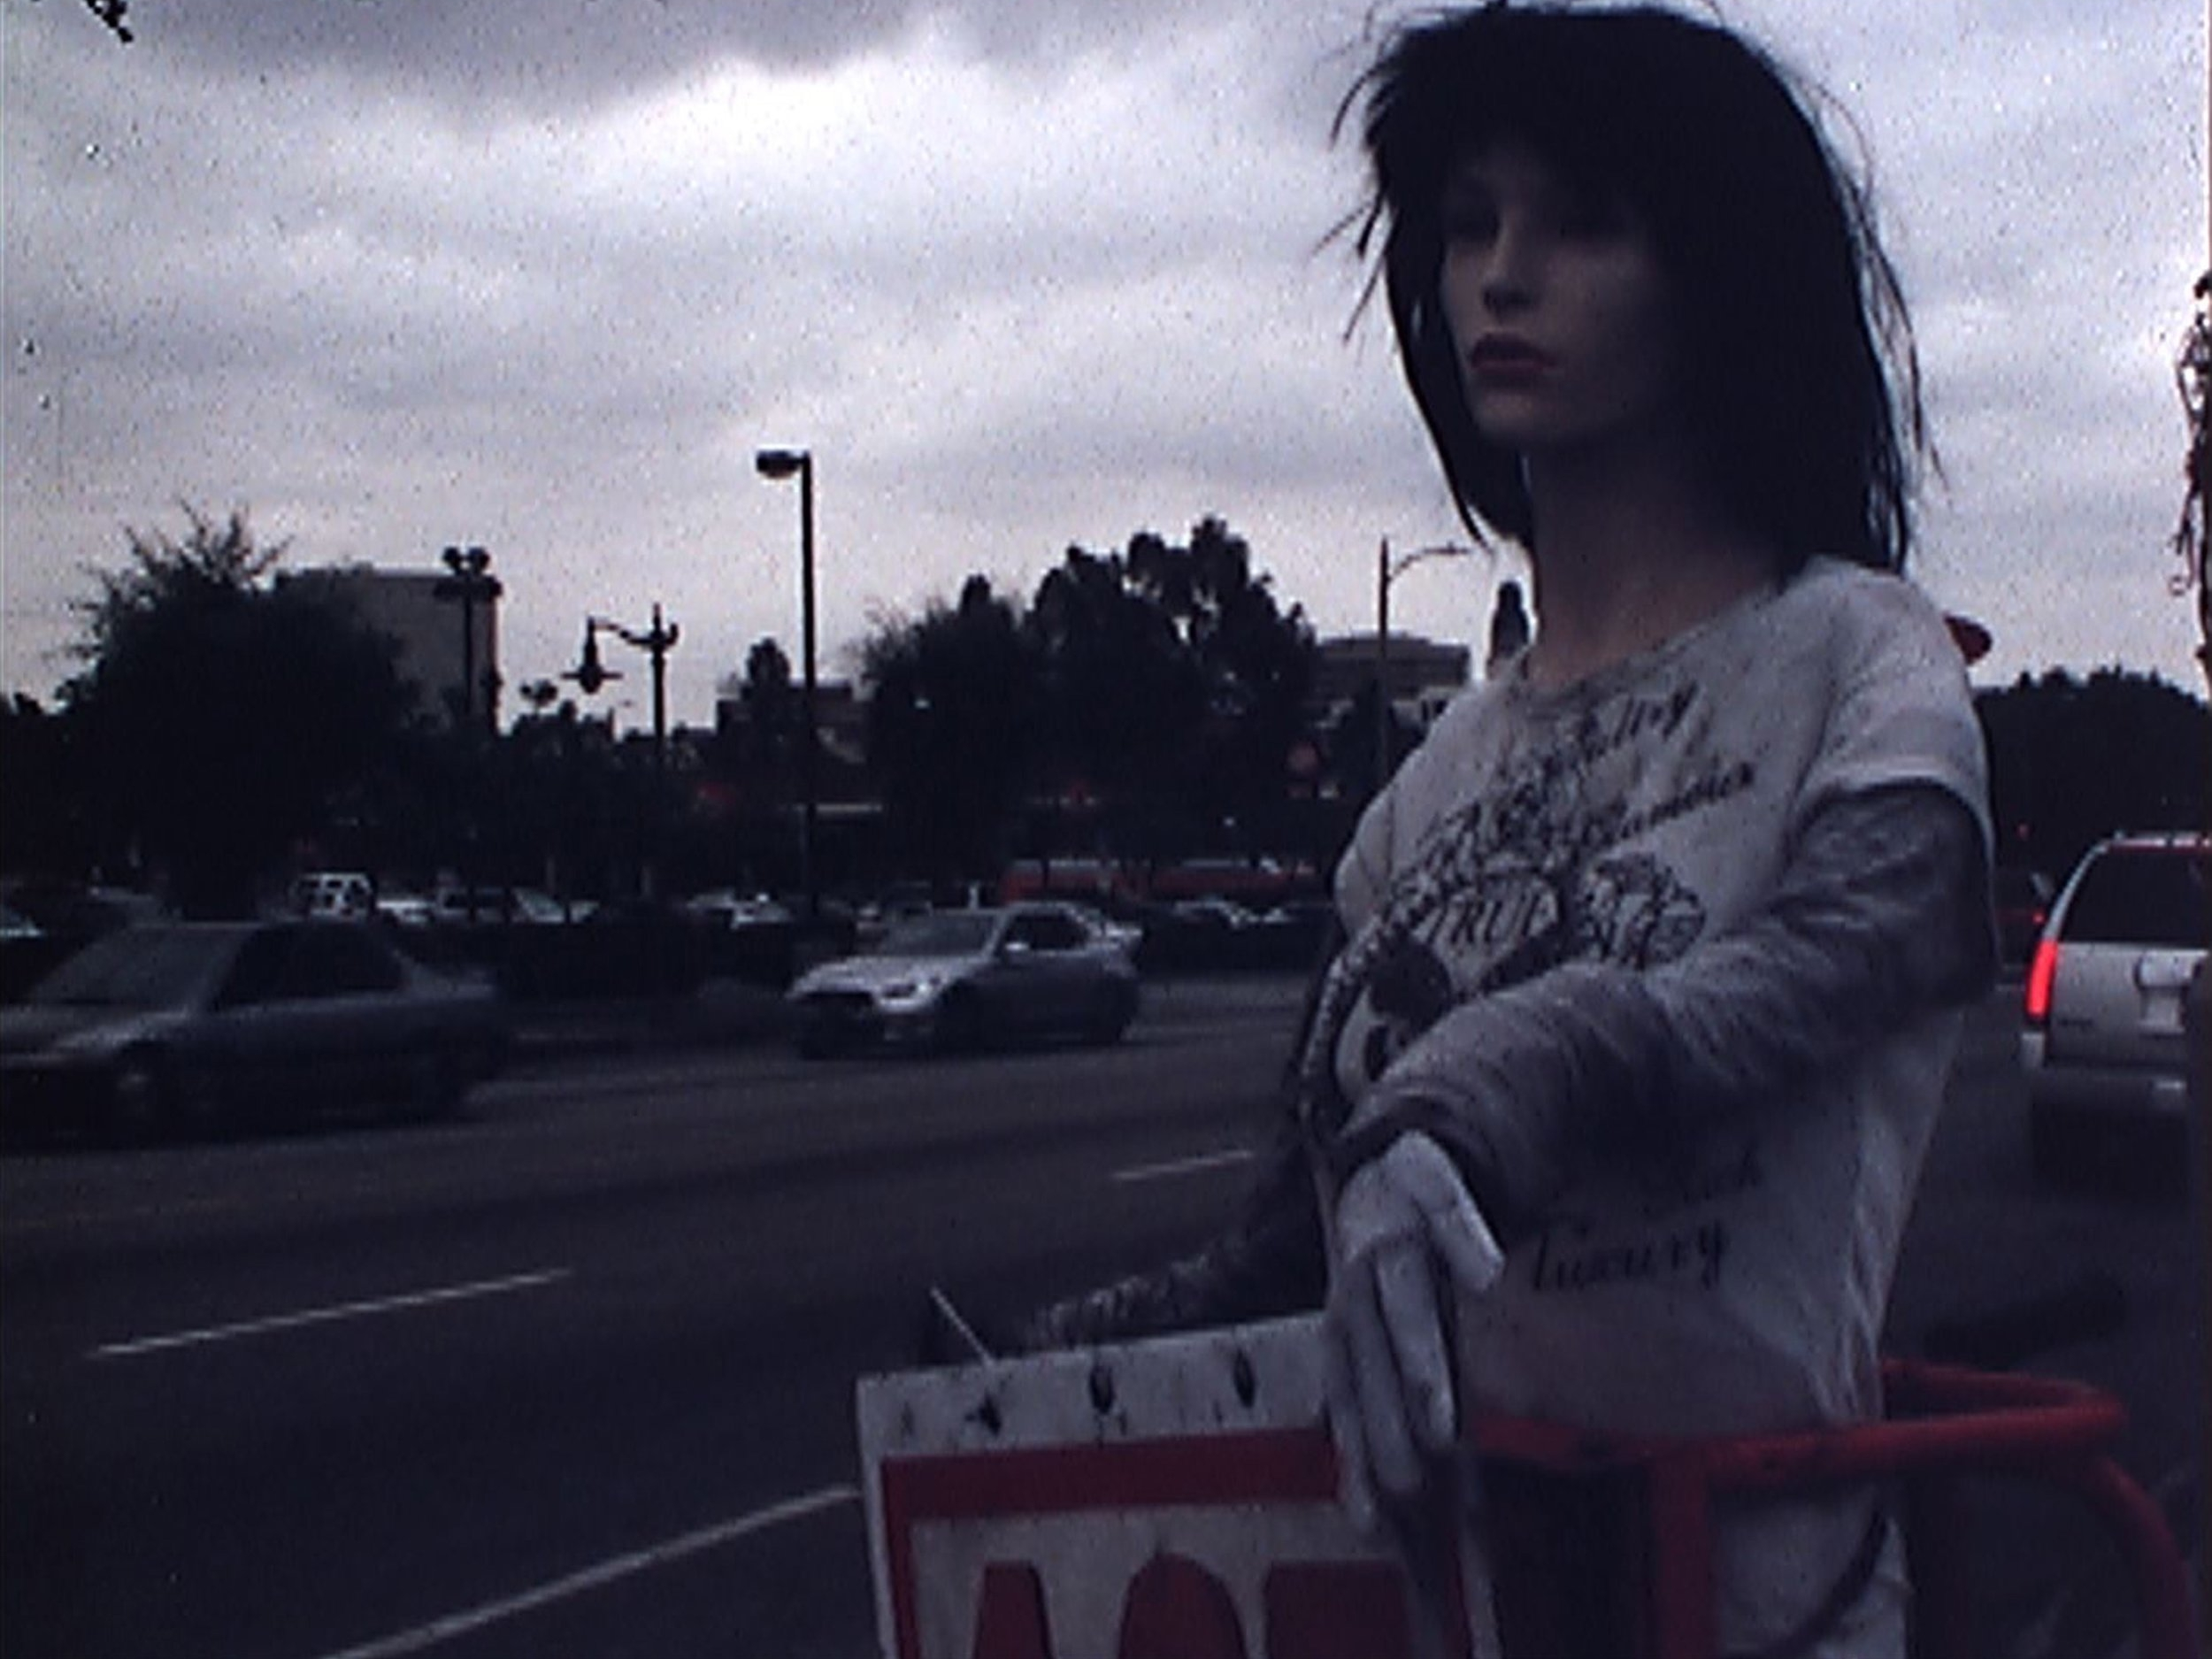 Non-Stop Beautiful Ladies     Alee Peoples   2015 |9 minutes |USA |16mm |color |sound  A Los Angeles street film starring empty signs, radio from passing cars and human sign spinners, some with a pulse and some without. -AP